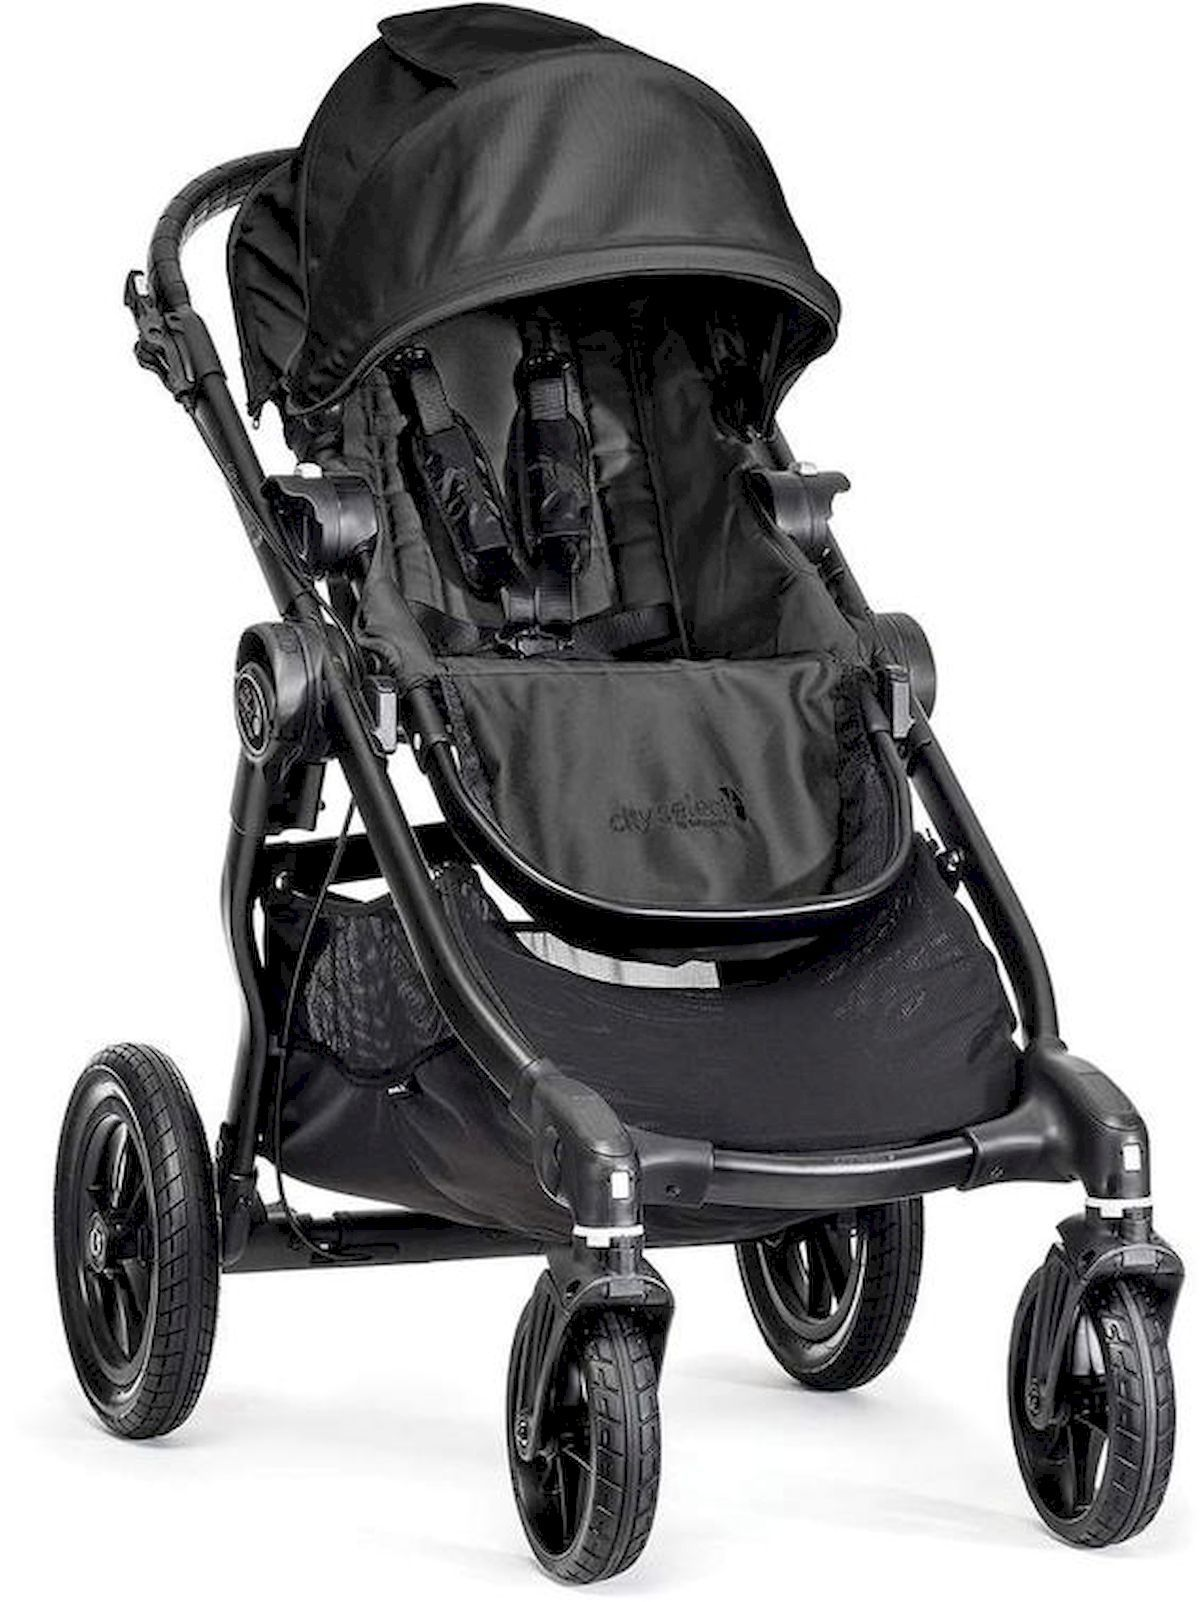 50 Best Baby Stroller Ideas for Your Baby Baby jogger